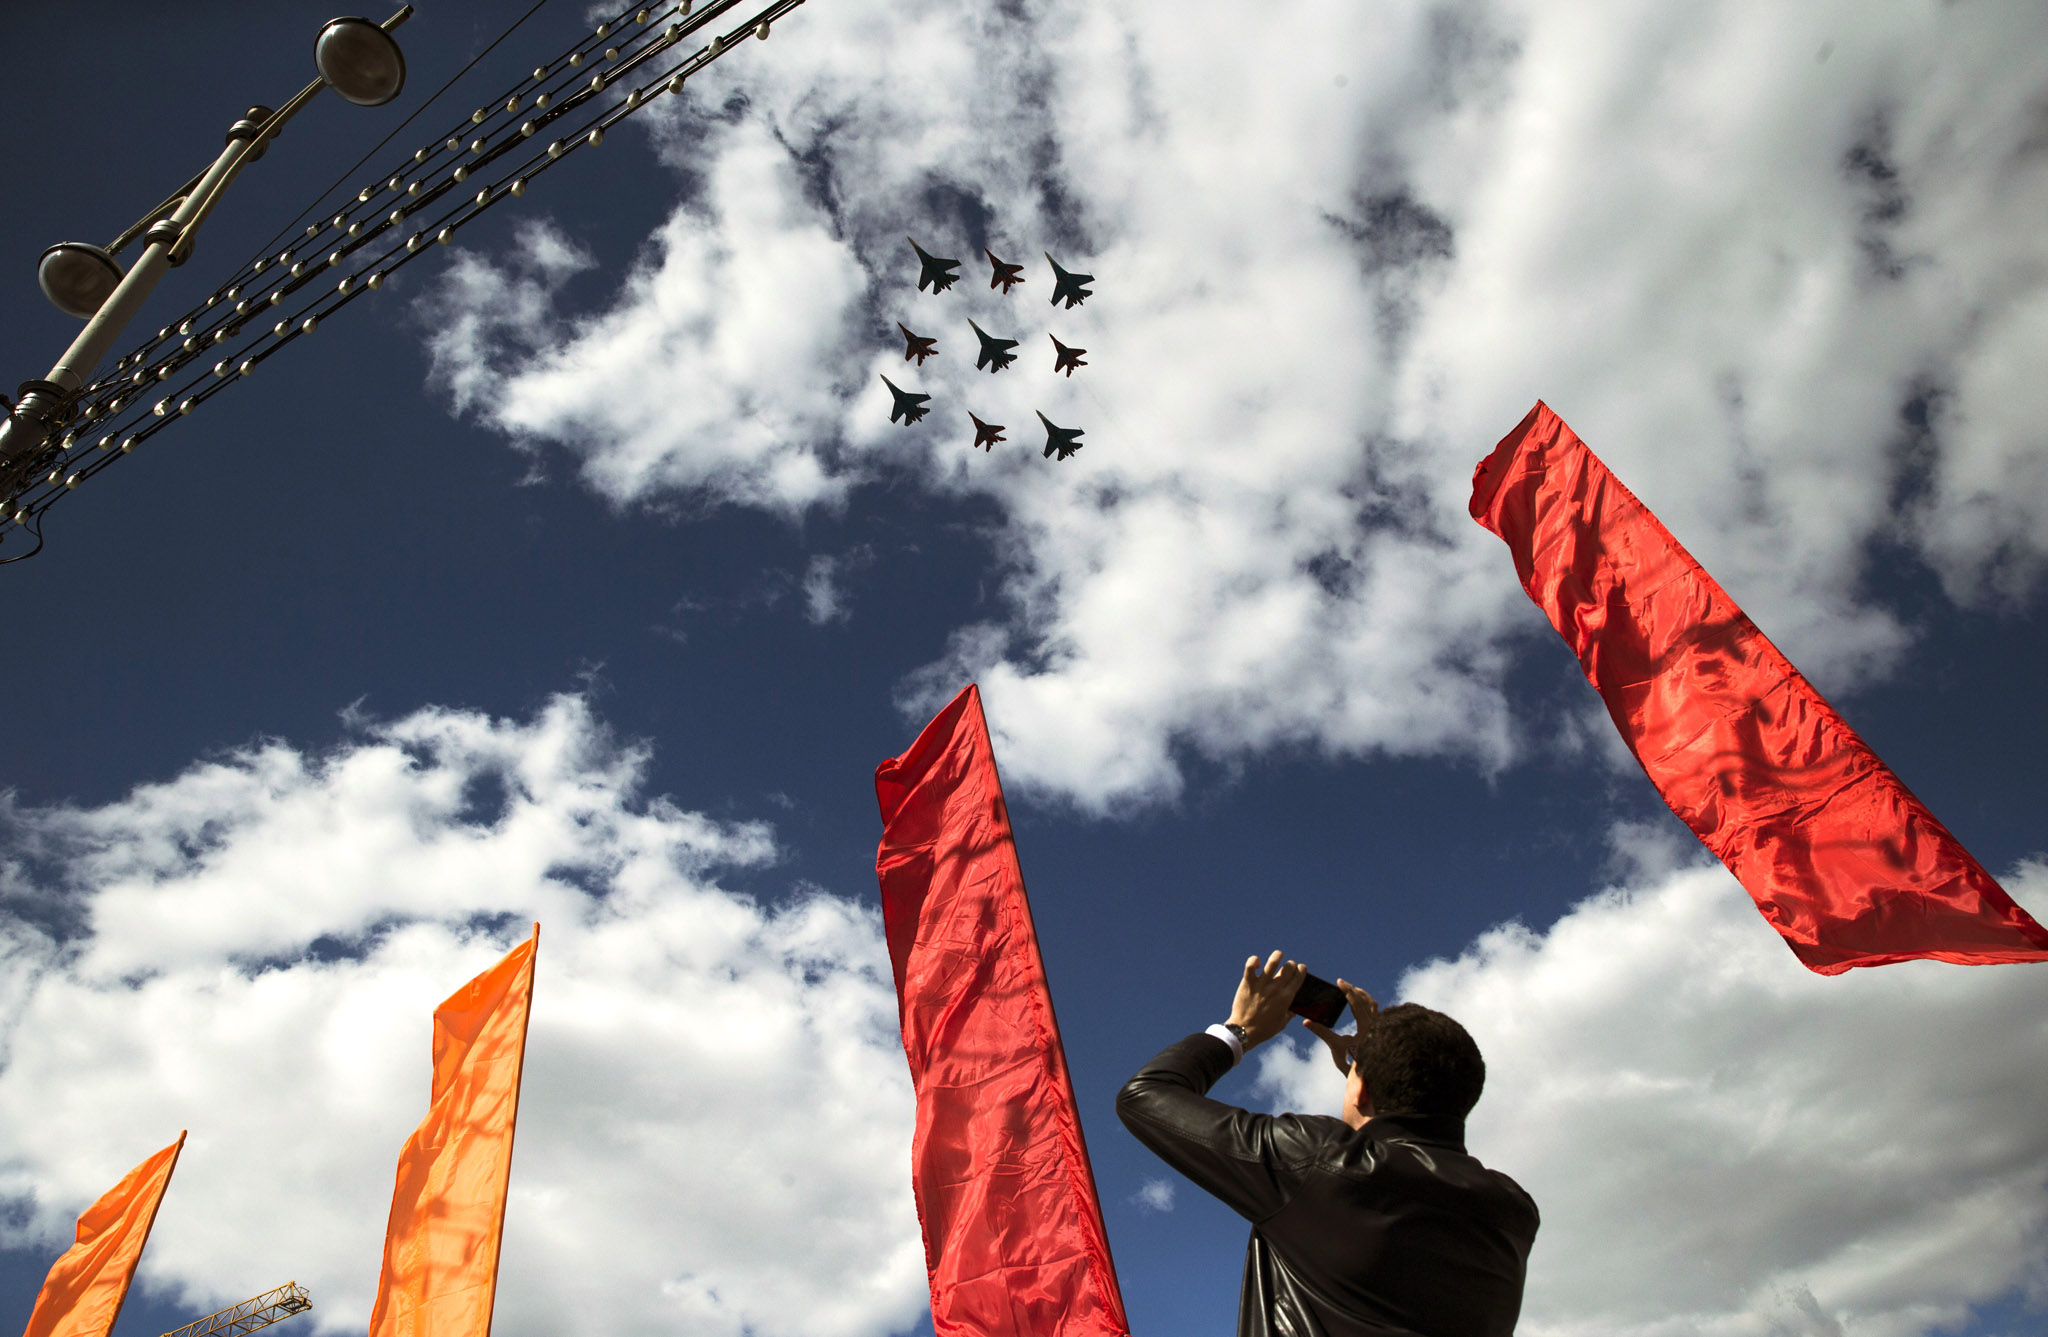 A man takes a picture of Russian Air Force fighter jets as they fly over Moscow during a rehearsal for the Victory Day military parade which will take place at Moscow's Red Square on May 9, in Moscow, Russia, Tuesday, May 5, 2015. (AP Photo/Pavel Golovkin)